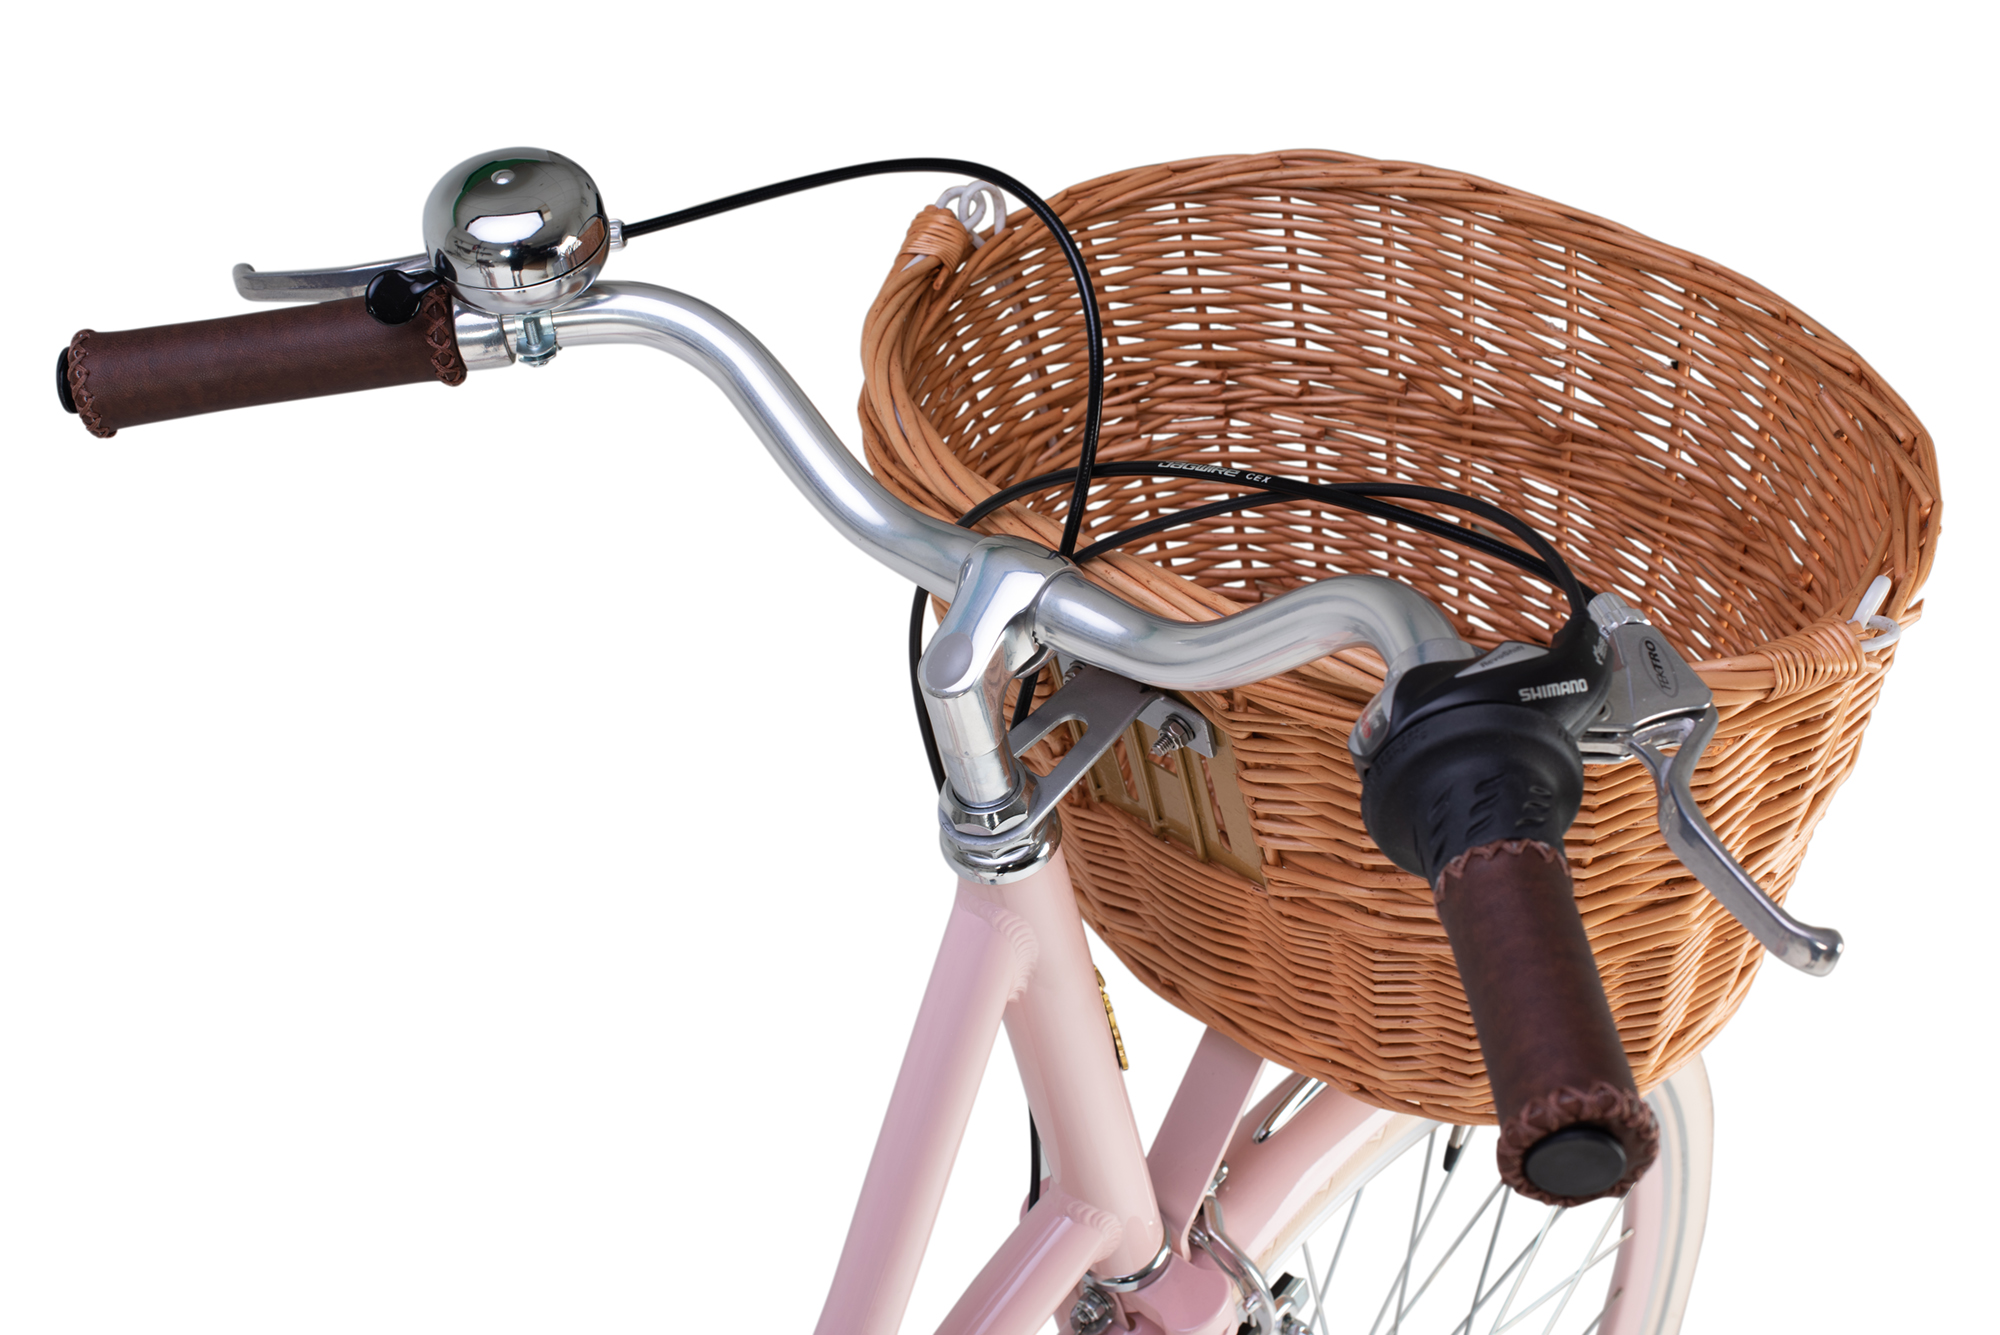 Handlebars and woven basket on the Raleigh Willow ladies bike in pink